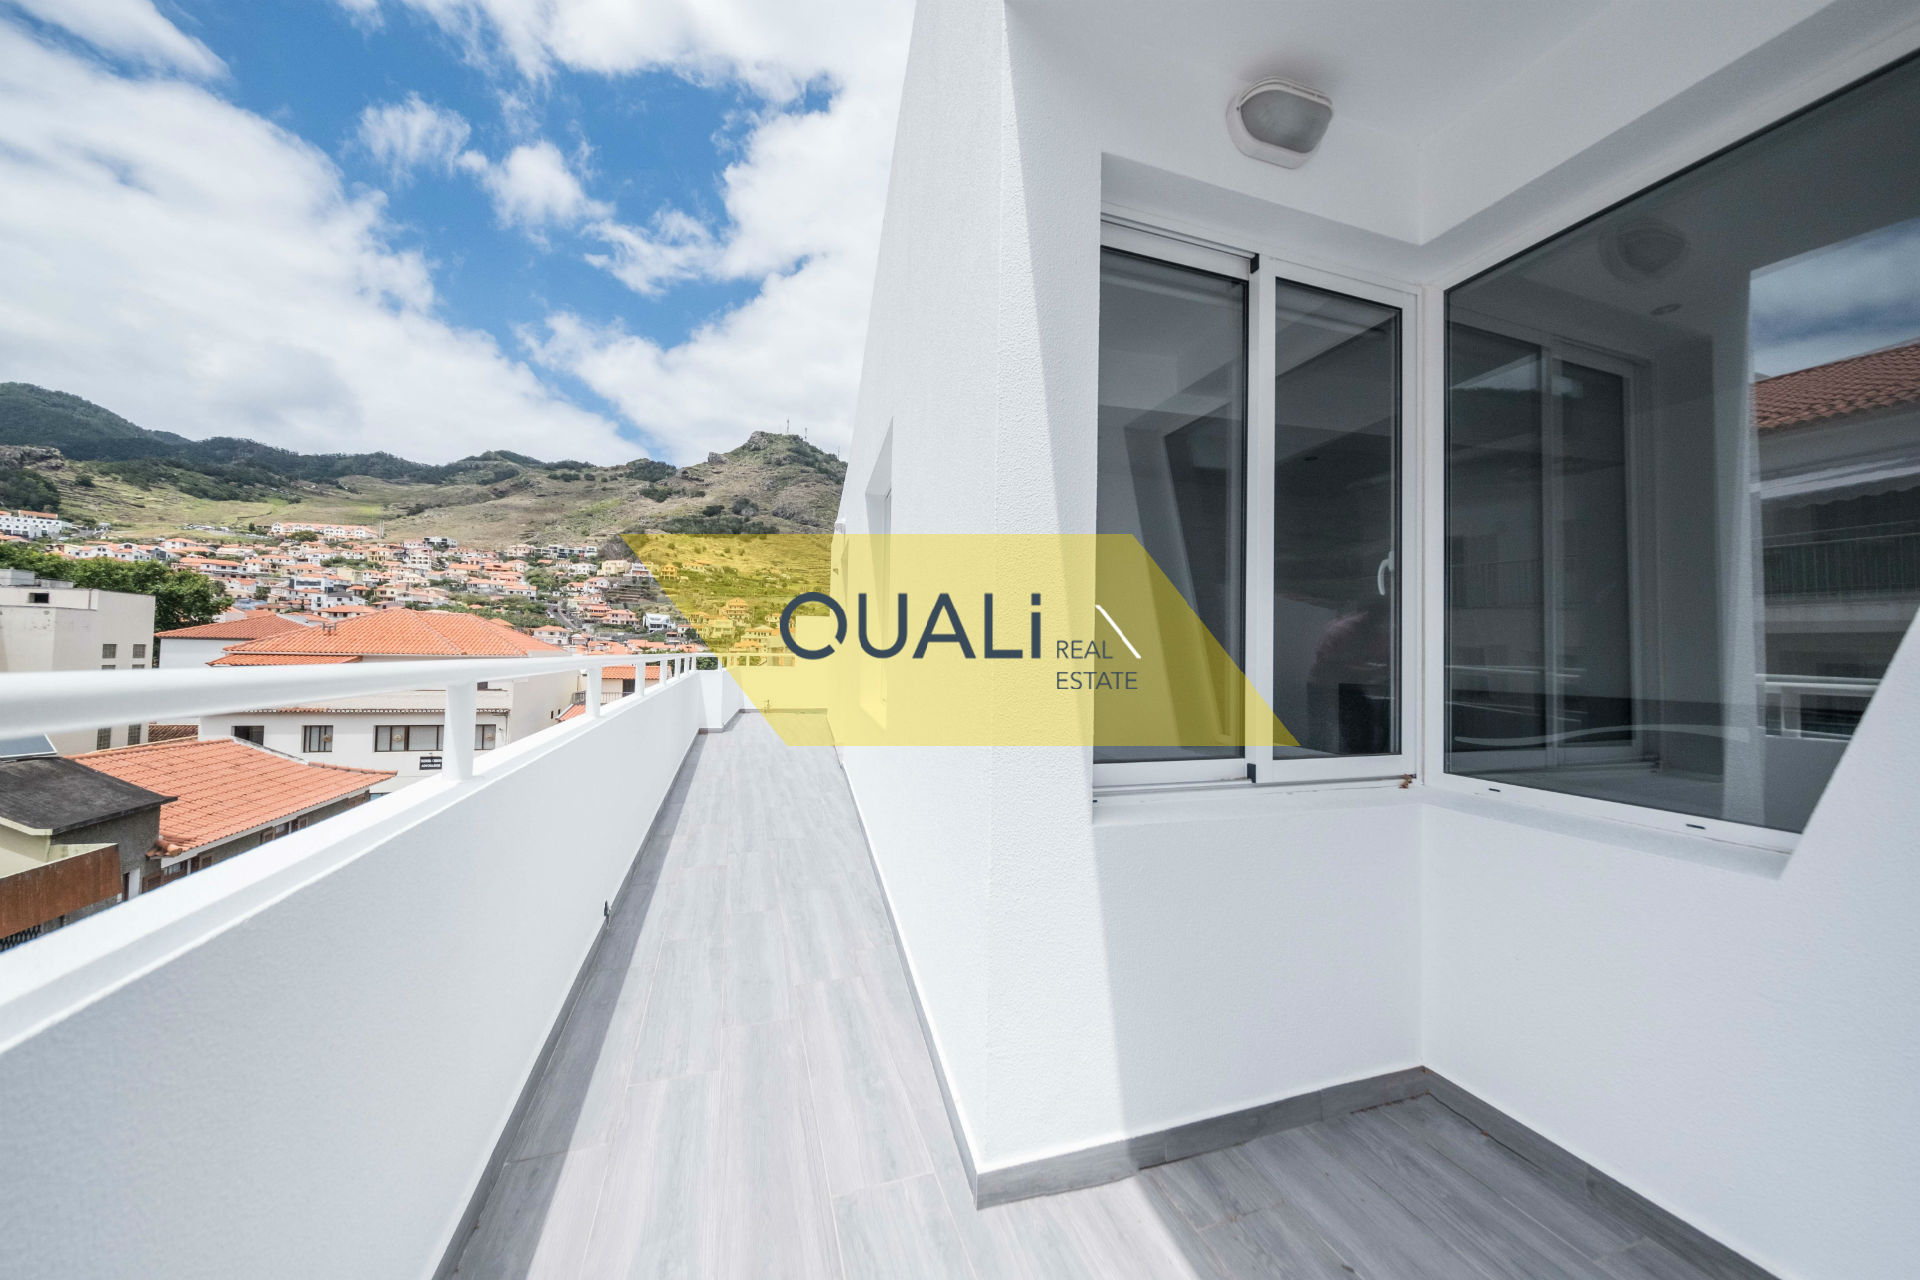 -Apartment T1 in the center of Machico two minutes from the beach area. € 145.000